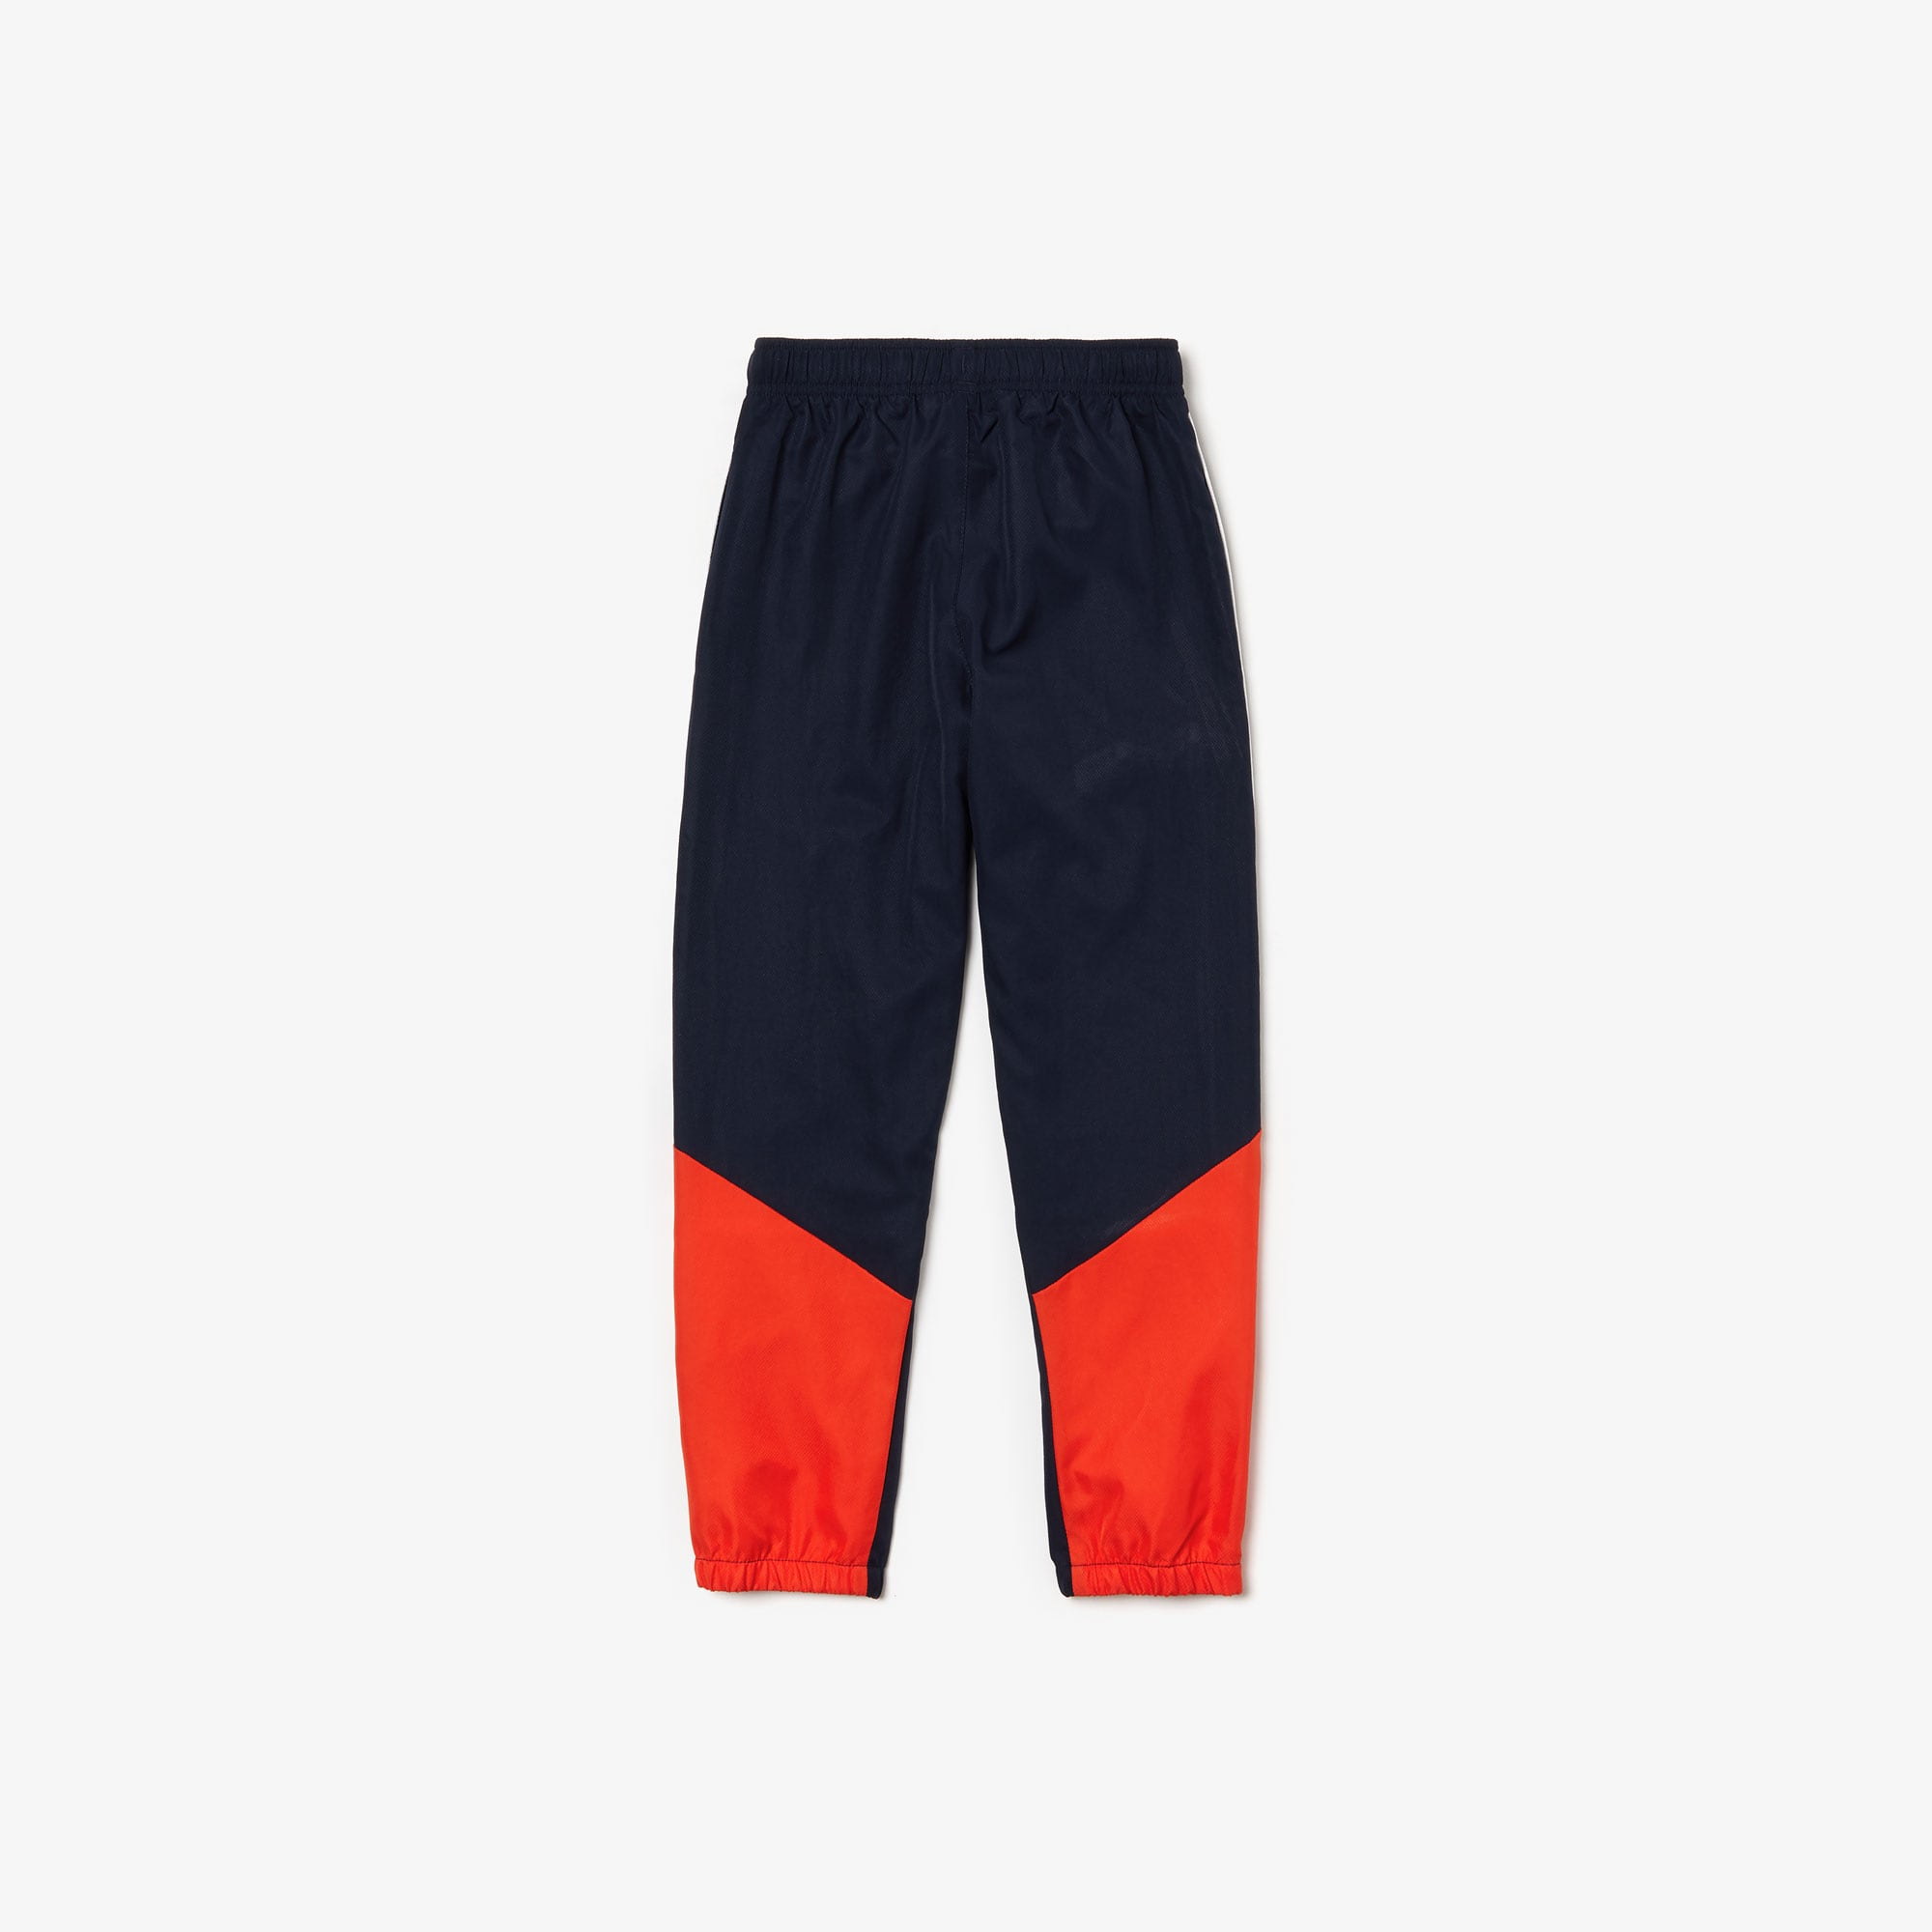 Boys' Lacoste SPORT Contrast Edging Colourblock Sweatpants